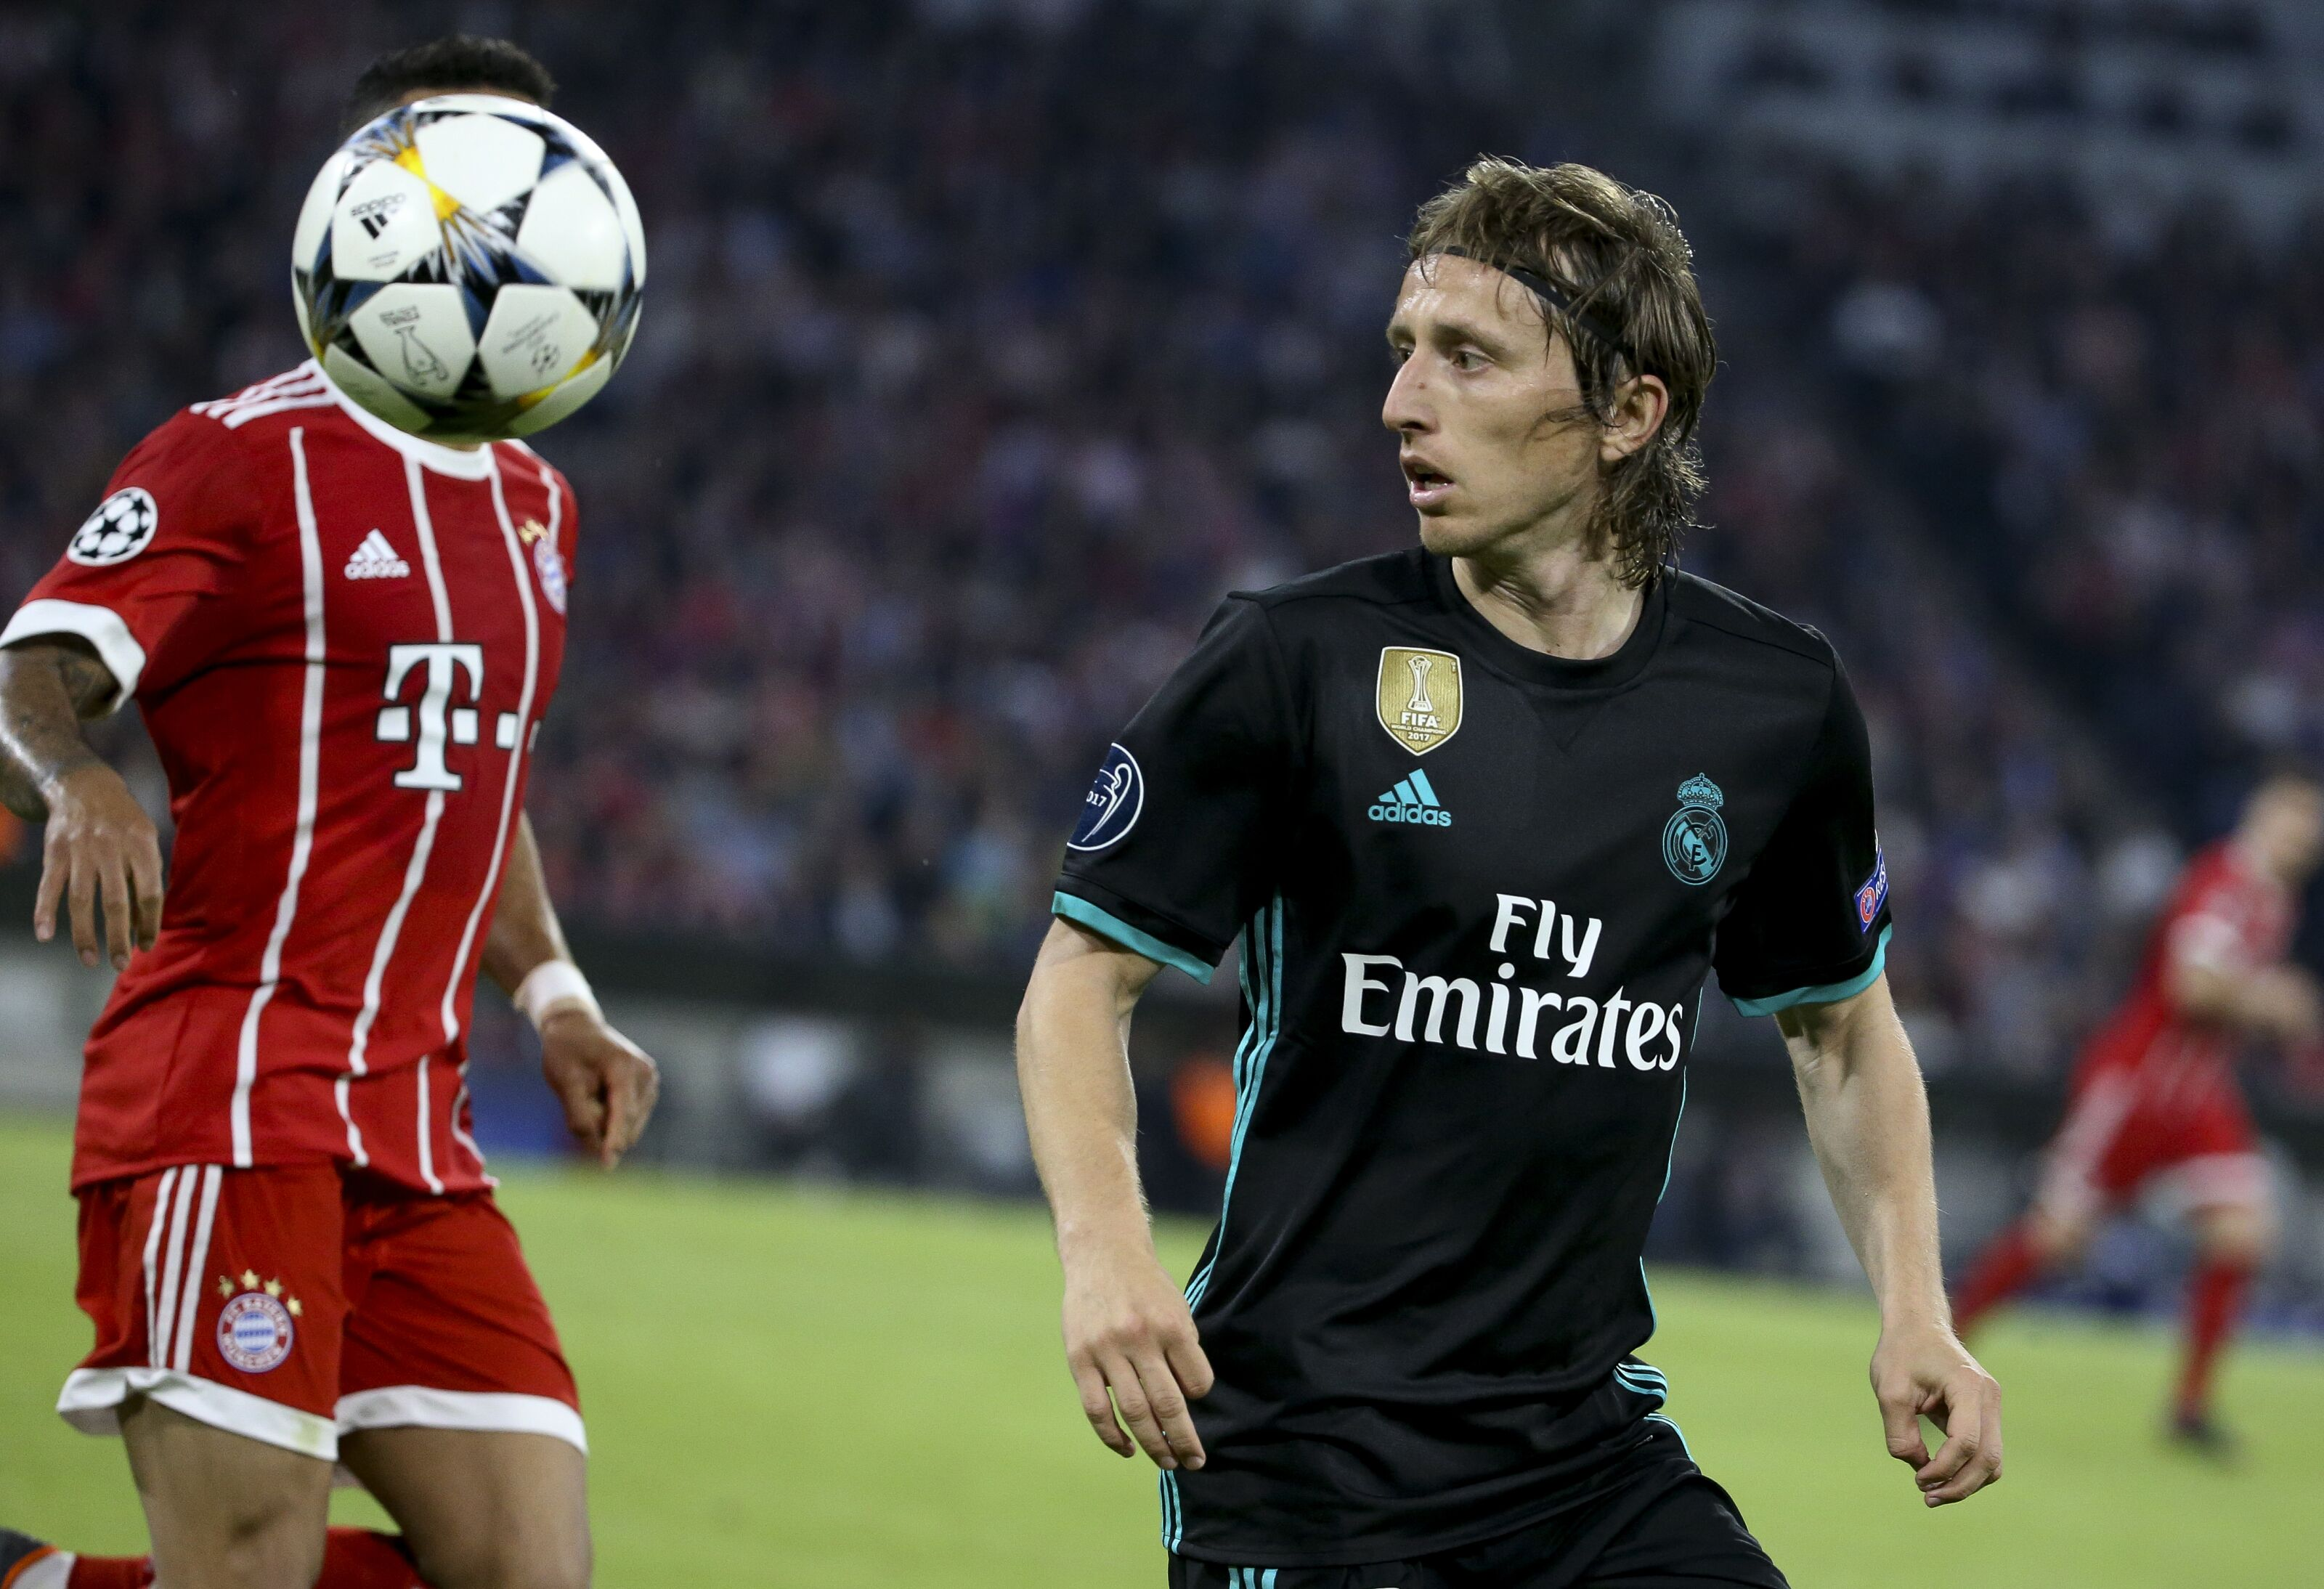 Player Ratings Real Madrid 2: Player Ratings From Real Madrid 2-1 Win Over Bayern Munich